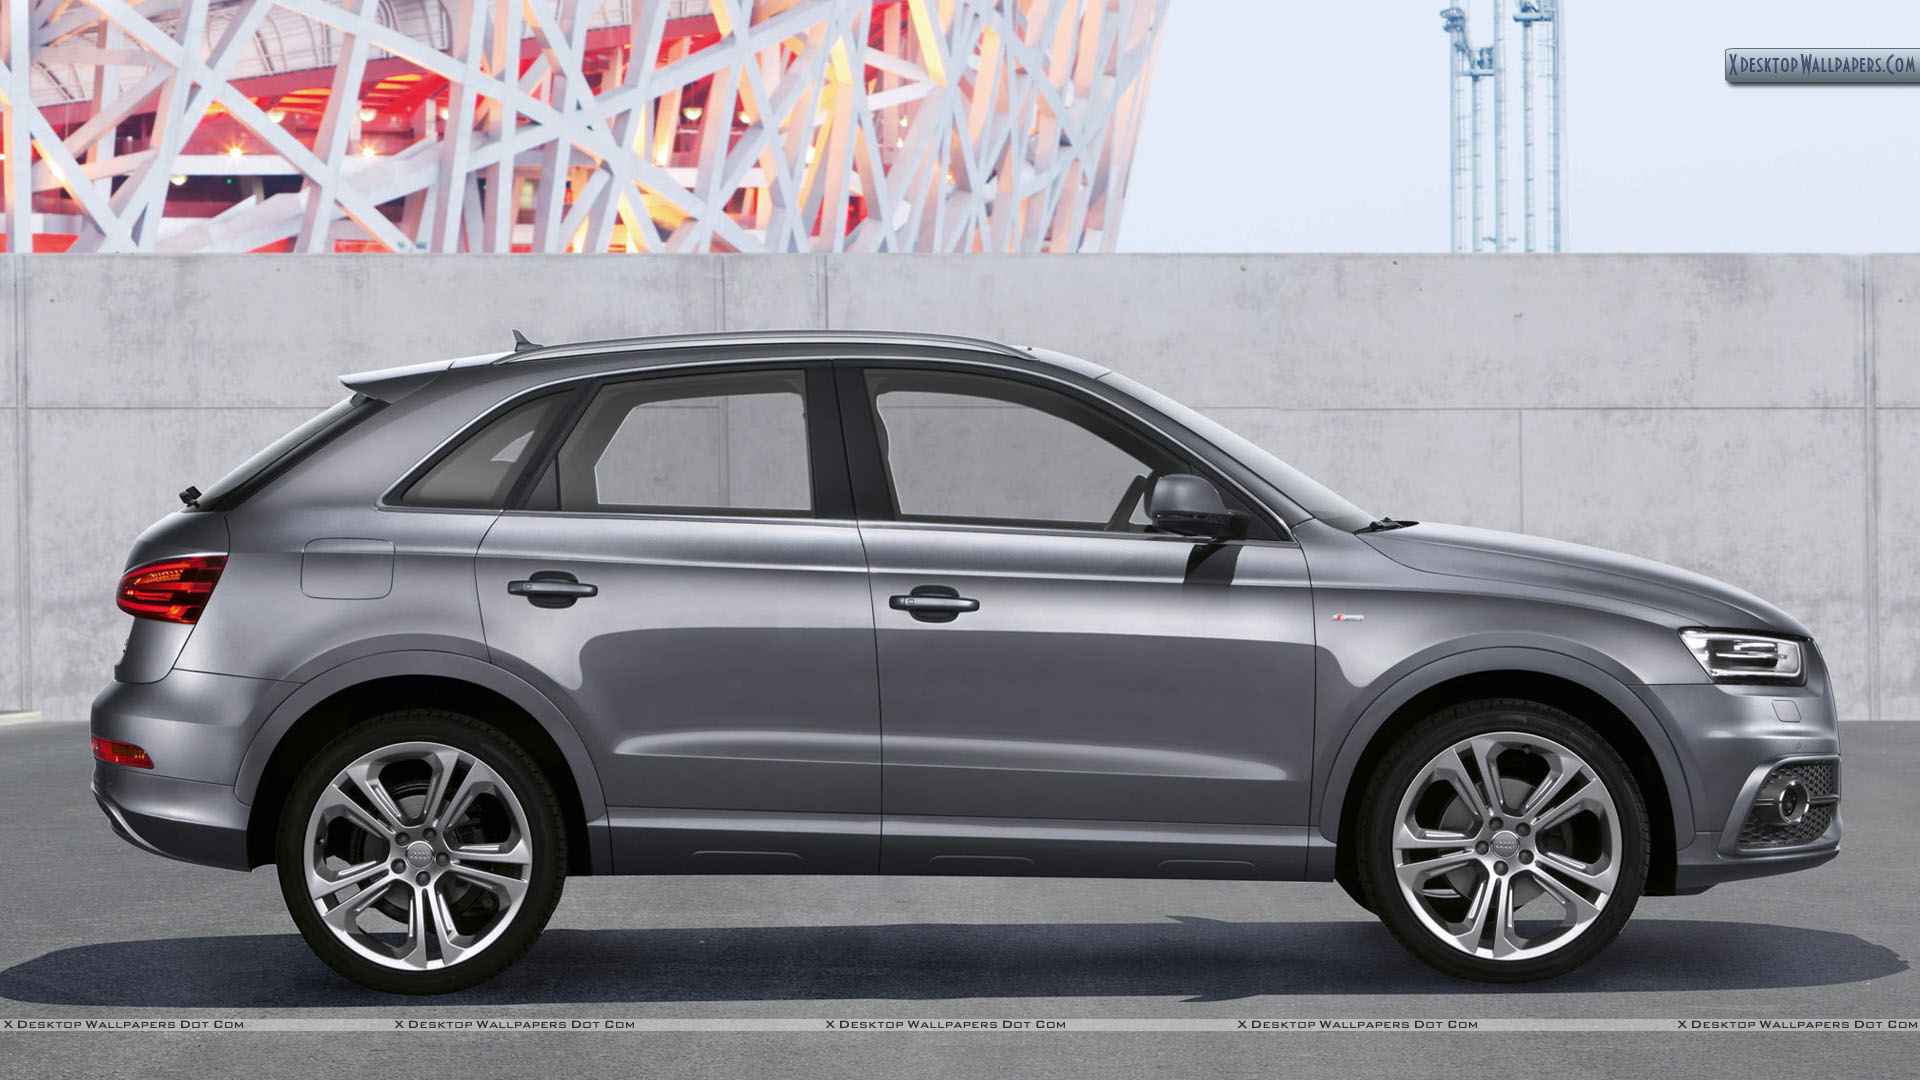 22012 audi q3 quattro s line metalic grey side pose wallpaper. Black Bedroom Furniture Sets. Home Design Ideas